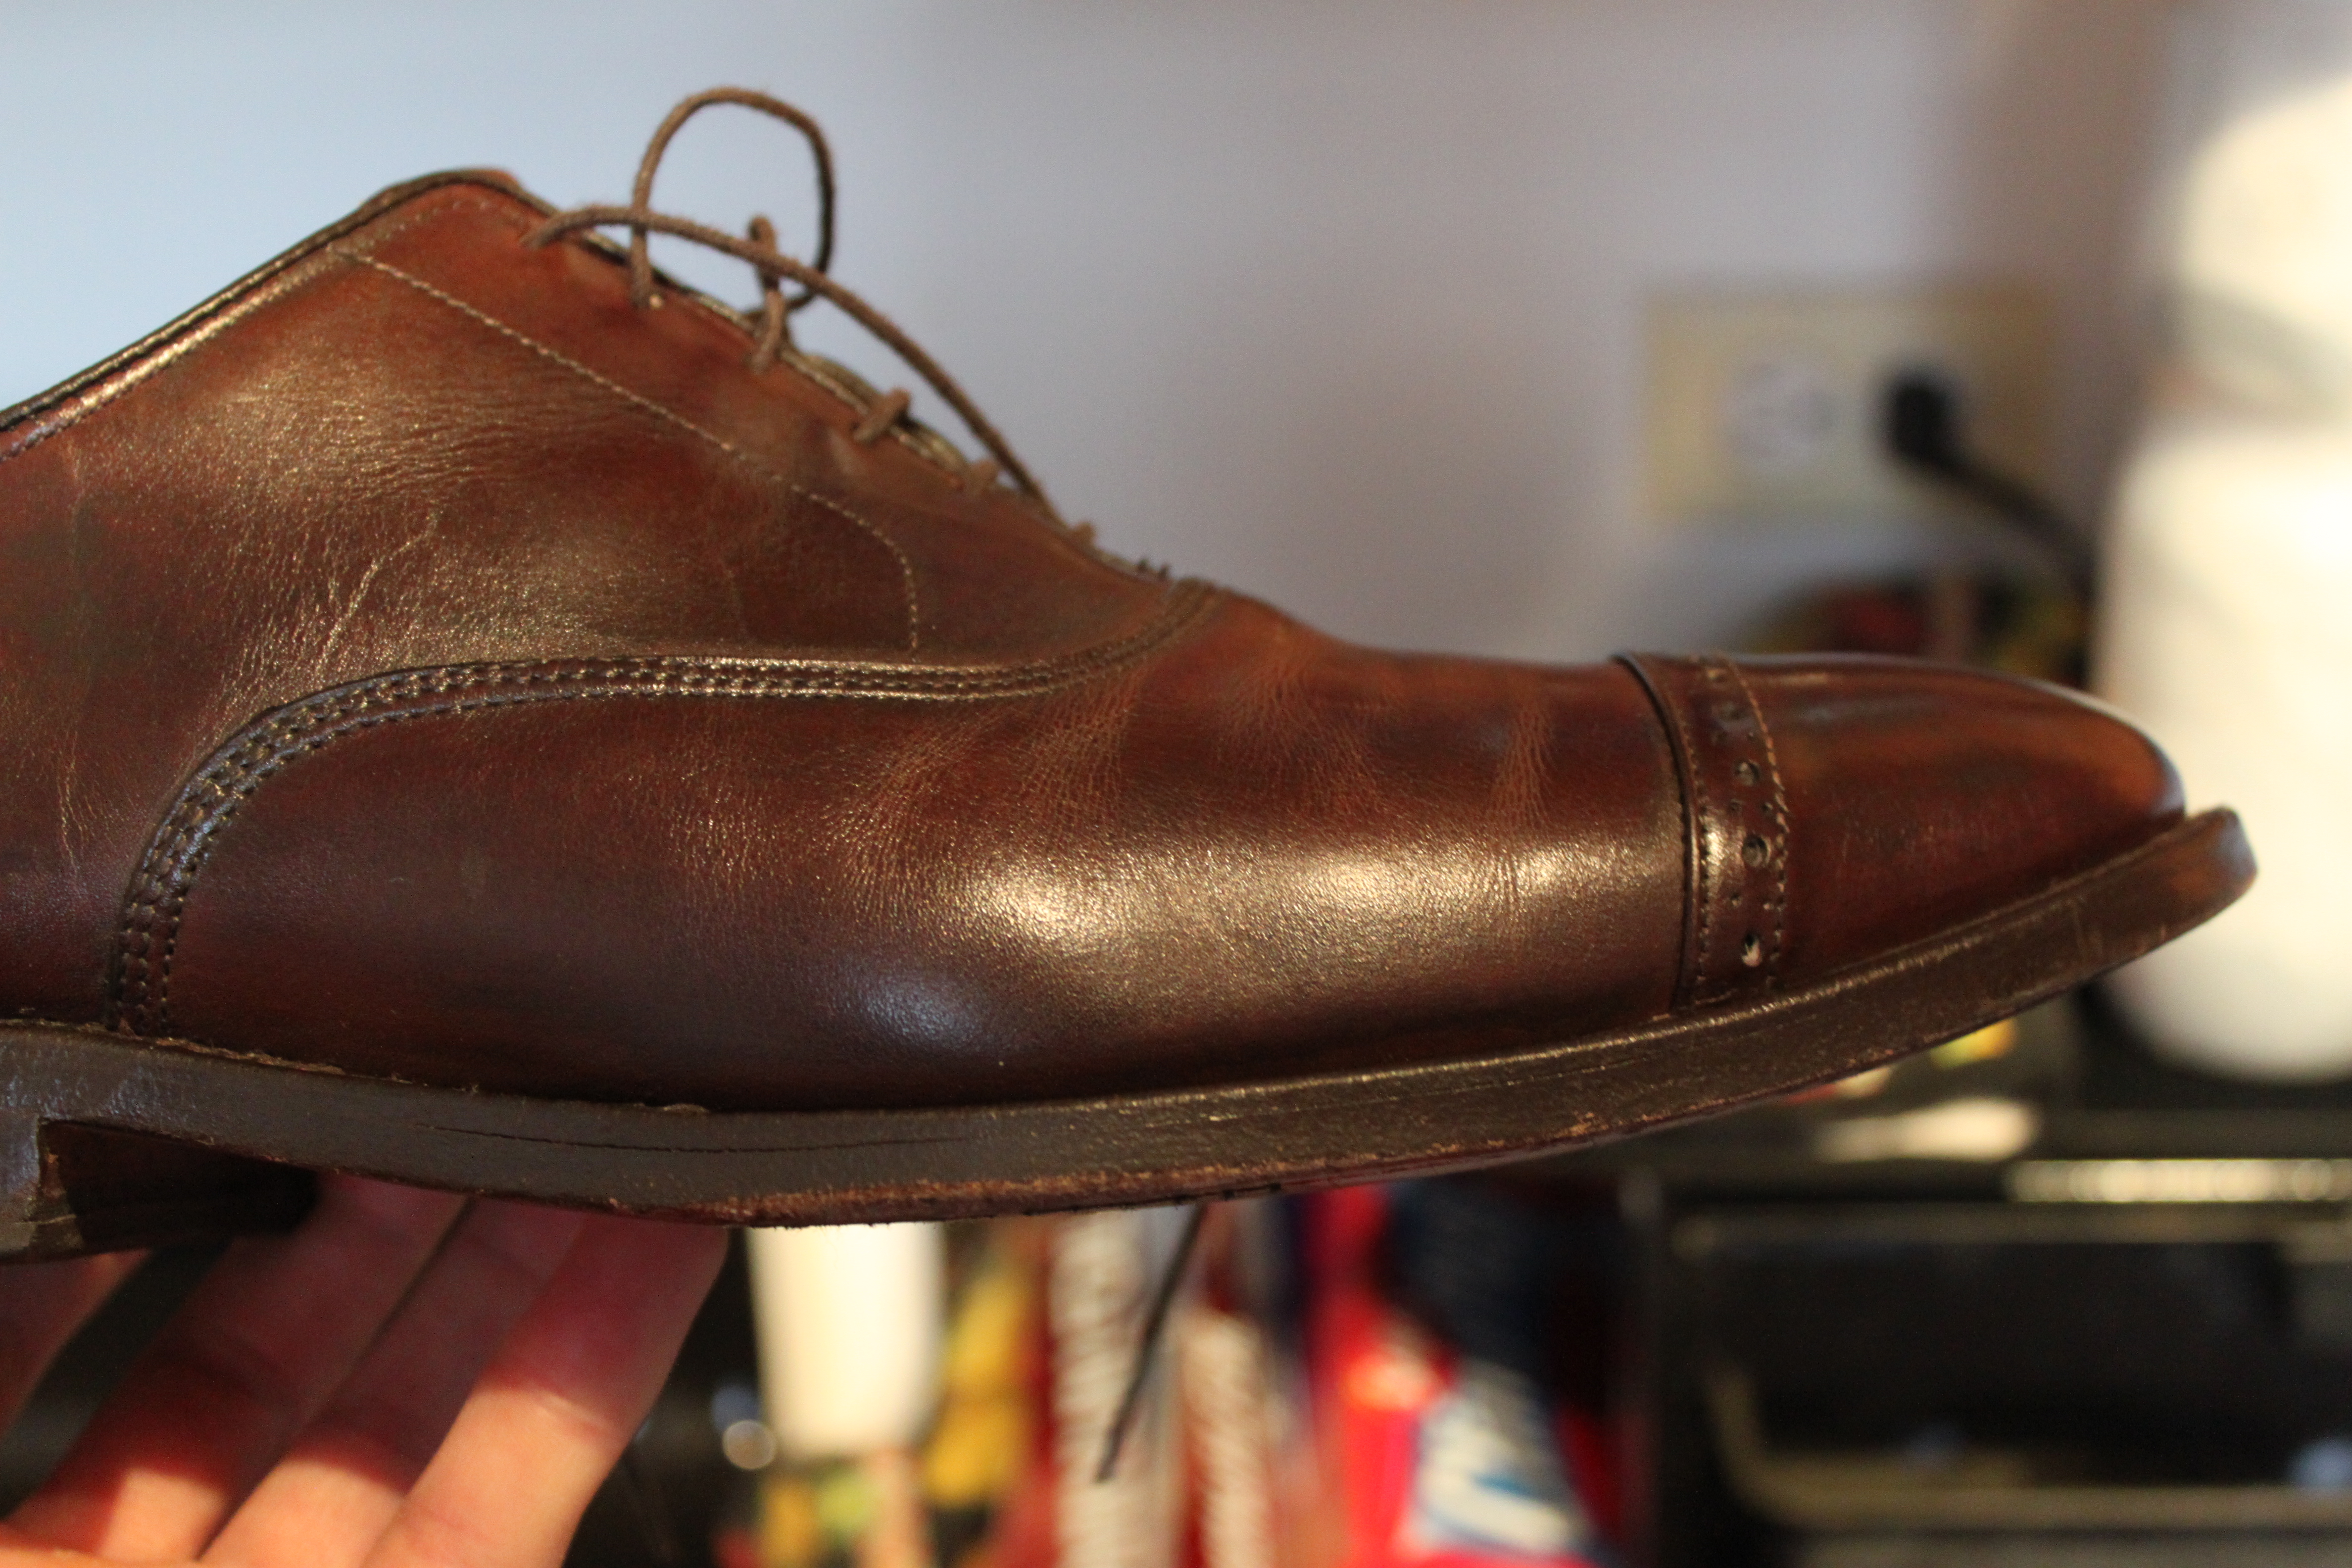 Brown Dress Shoes Have Stains